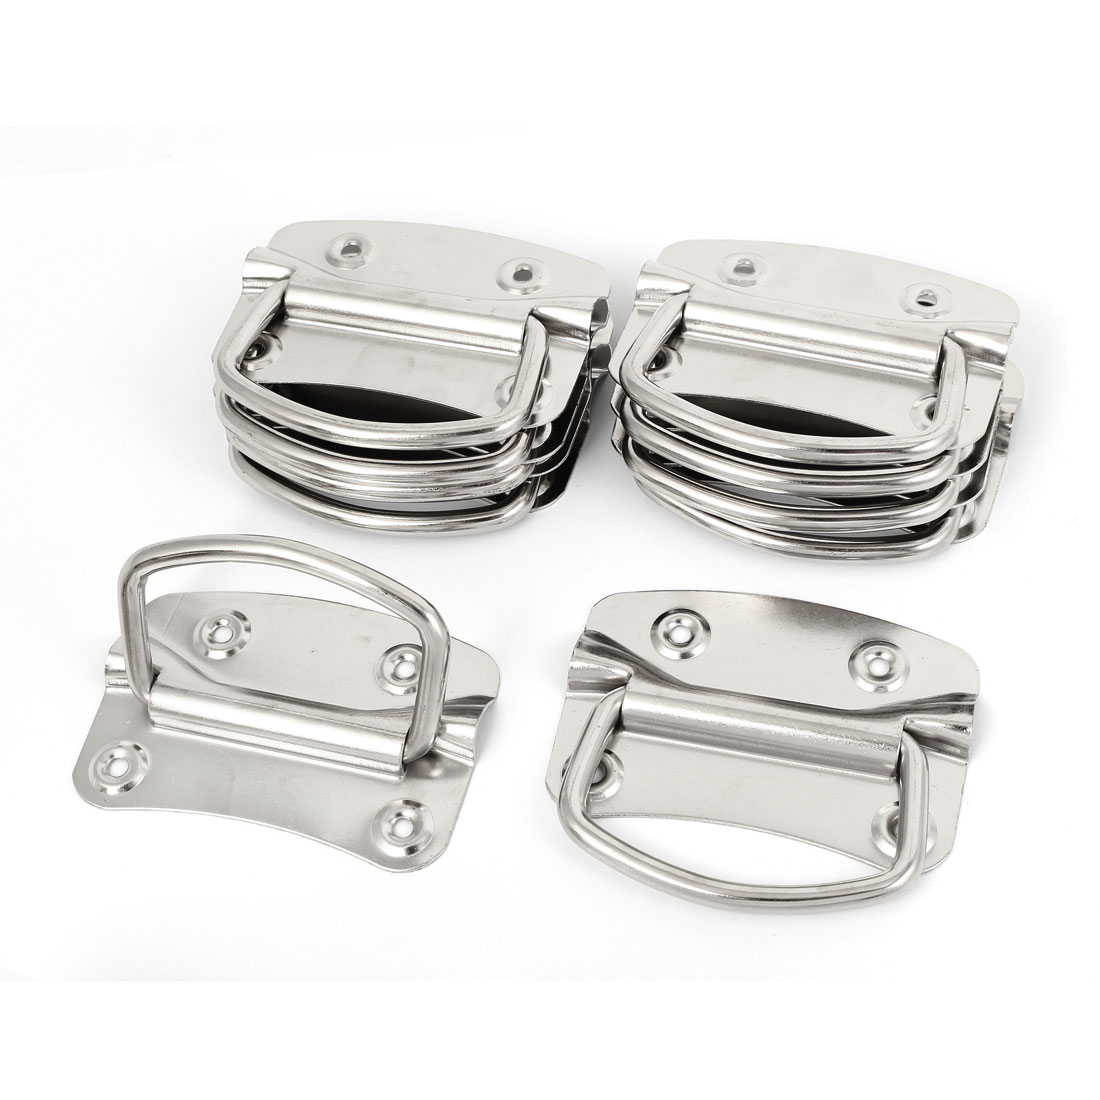 "Metal Toolbox Crates Boxes Puller Chest Handle Silver Tone 4"" Length 10pcs"